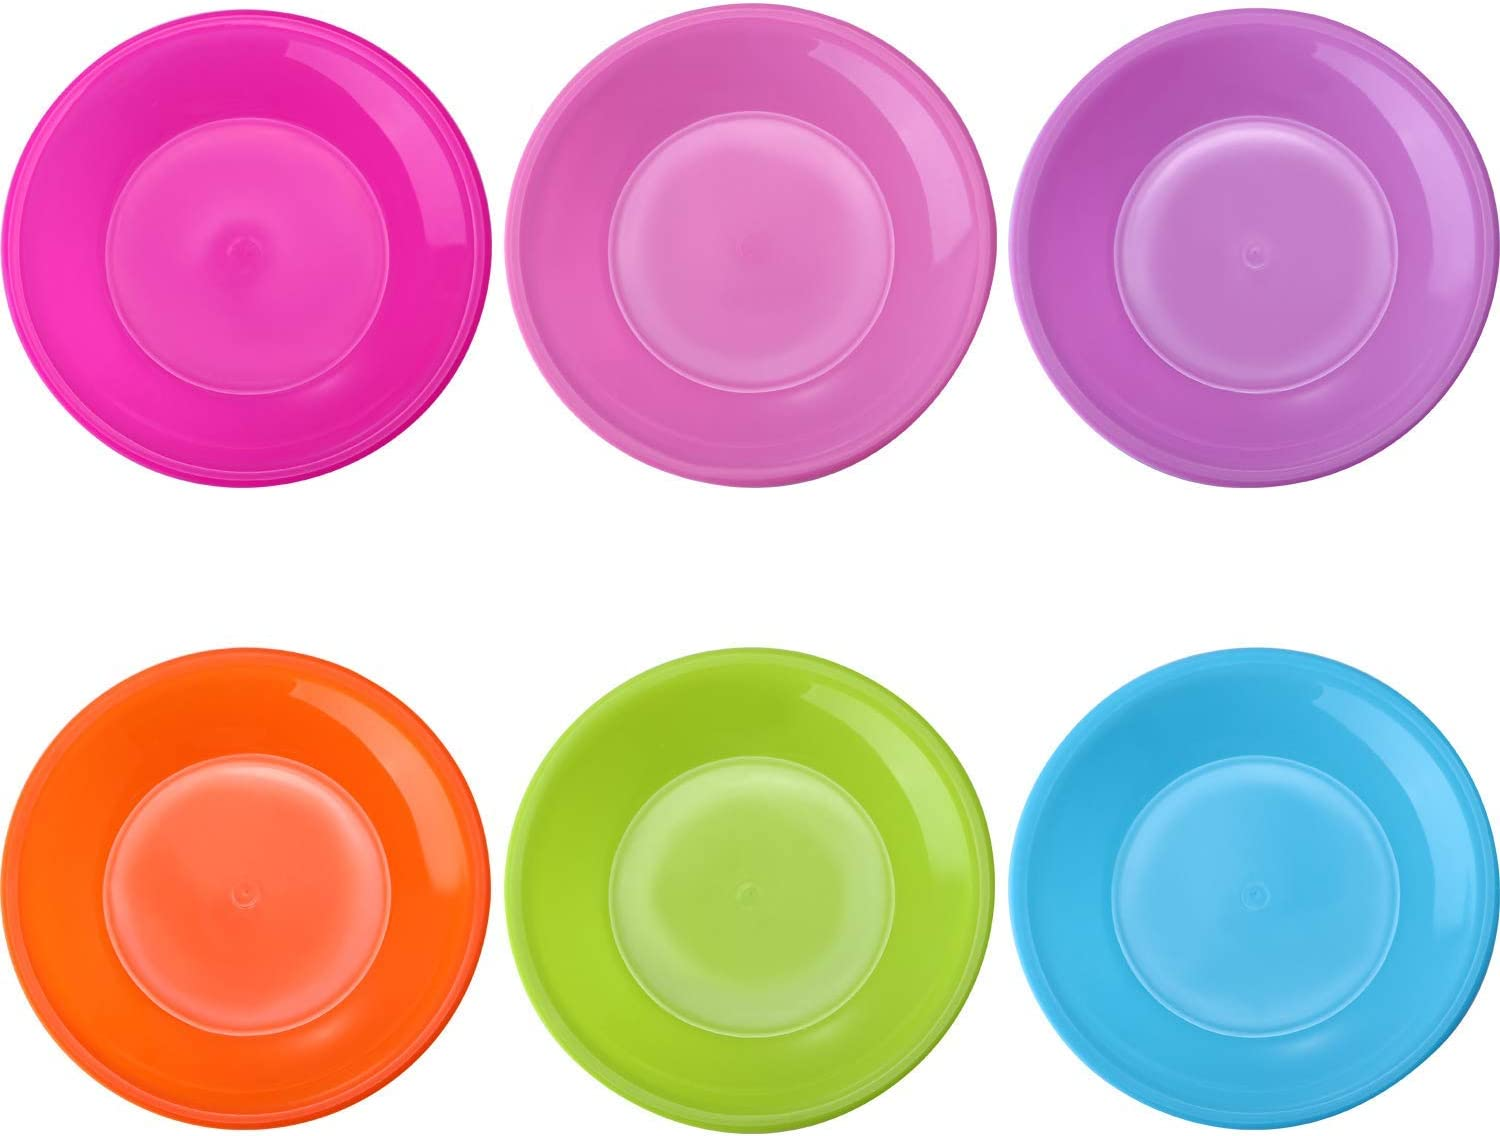 12 pack Colorful Plate Set Plastic Snack Plate Small Dinner Plates, Microwave and Dishwasher Safe, 6 Assorted Colors 2 Sets